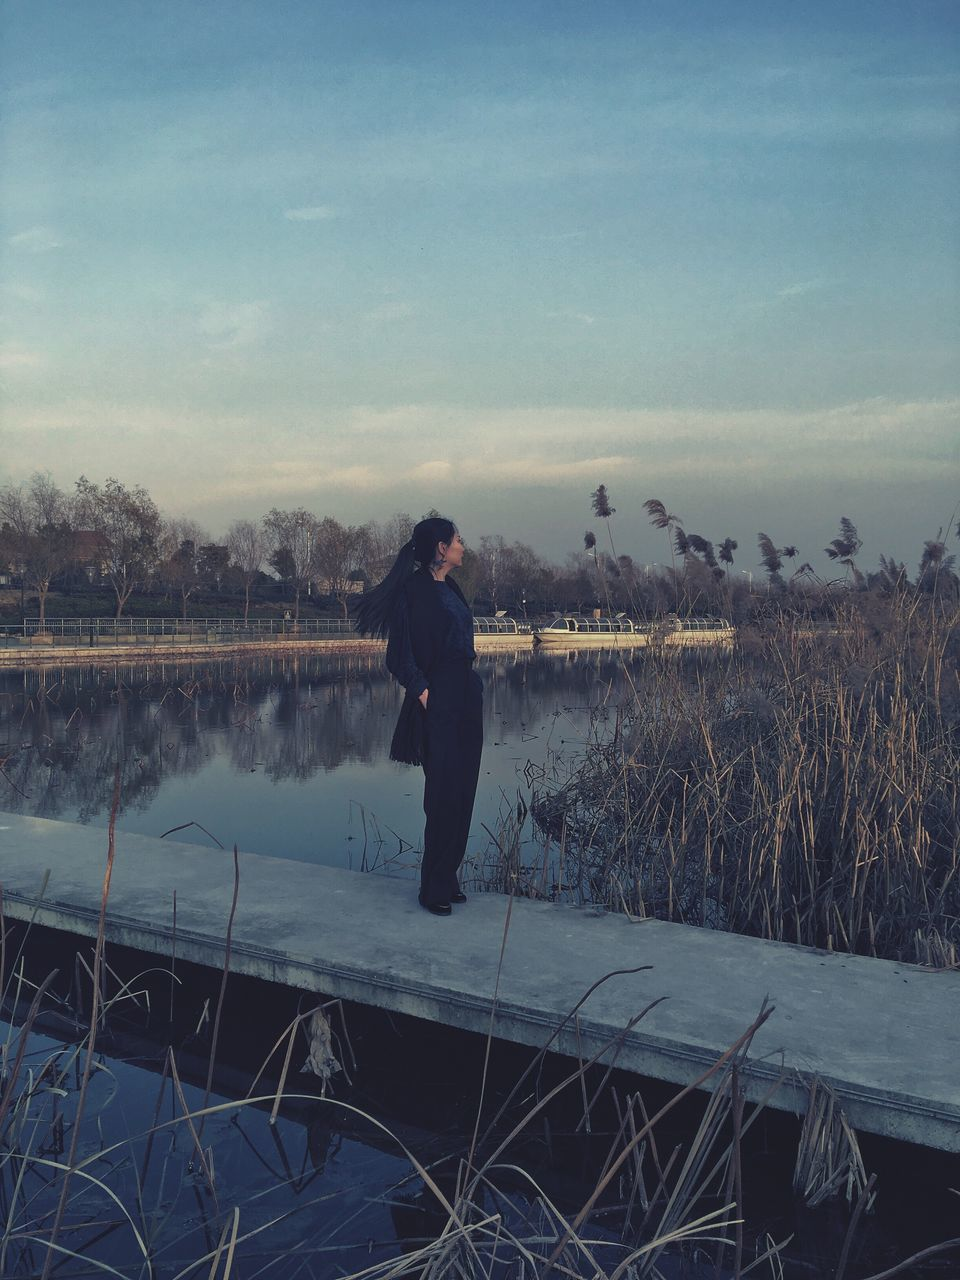 full length, one person, real people, sky, outdoors, nature, leisure activity, lifestyles, winter, standing, landscape, lake, plant, women, water, day, beauty in nature, cold temperature, tree, warm clothing, young adult, people